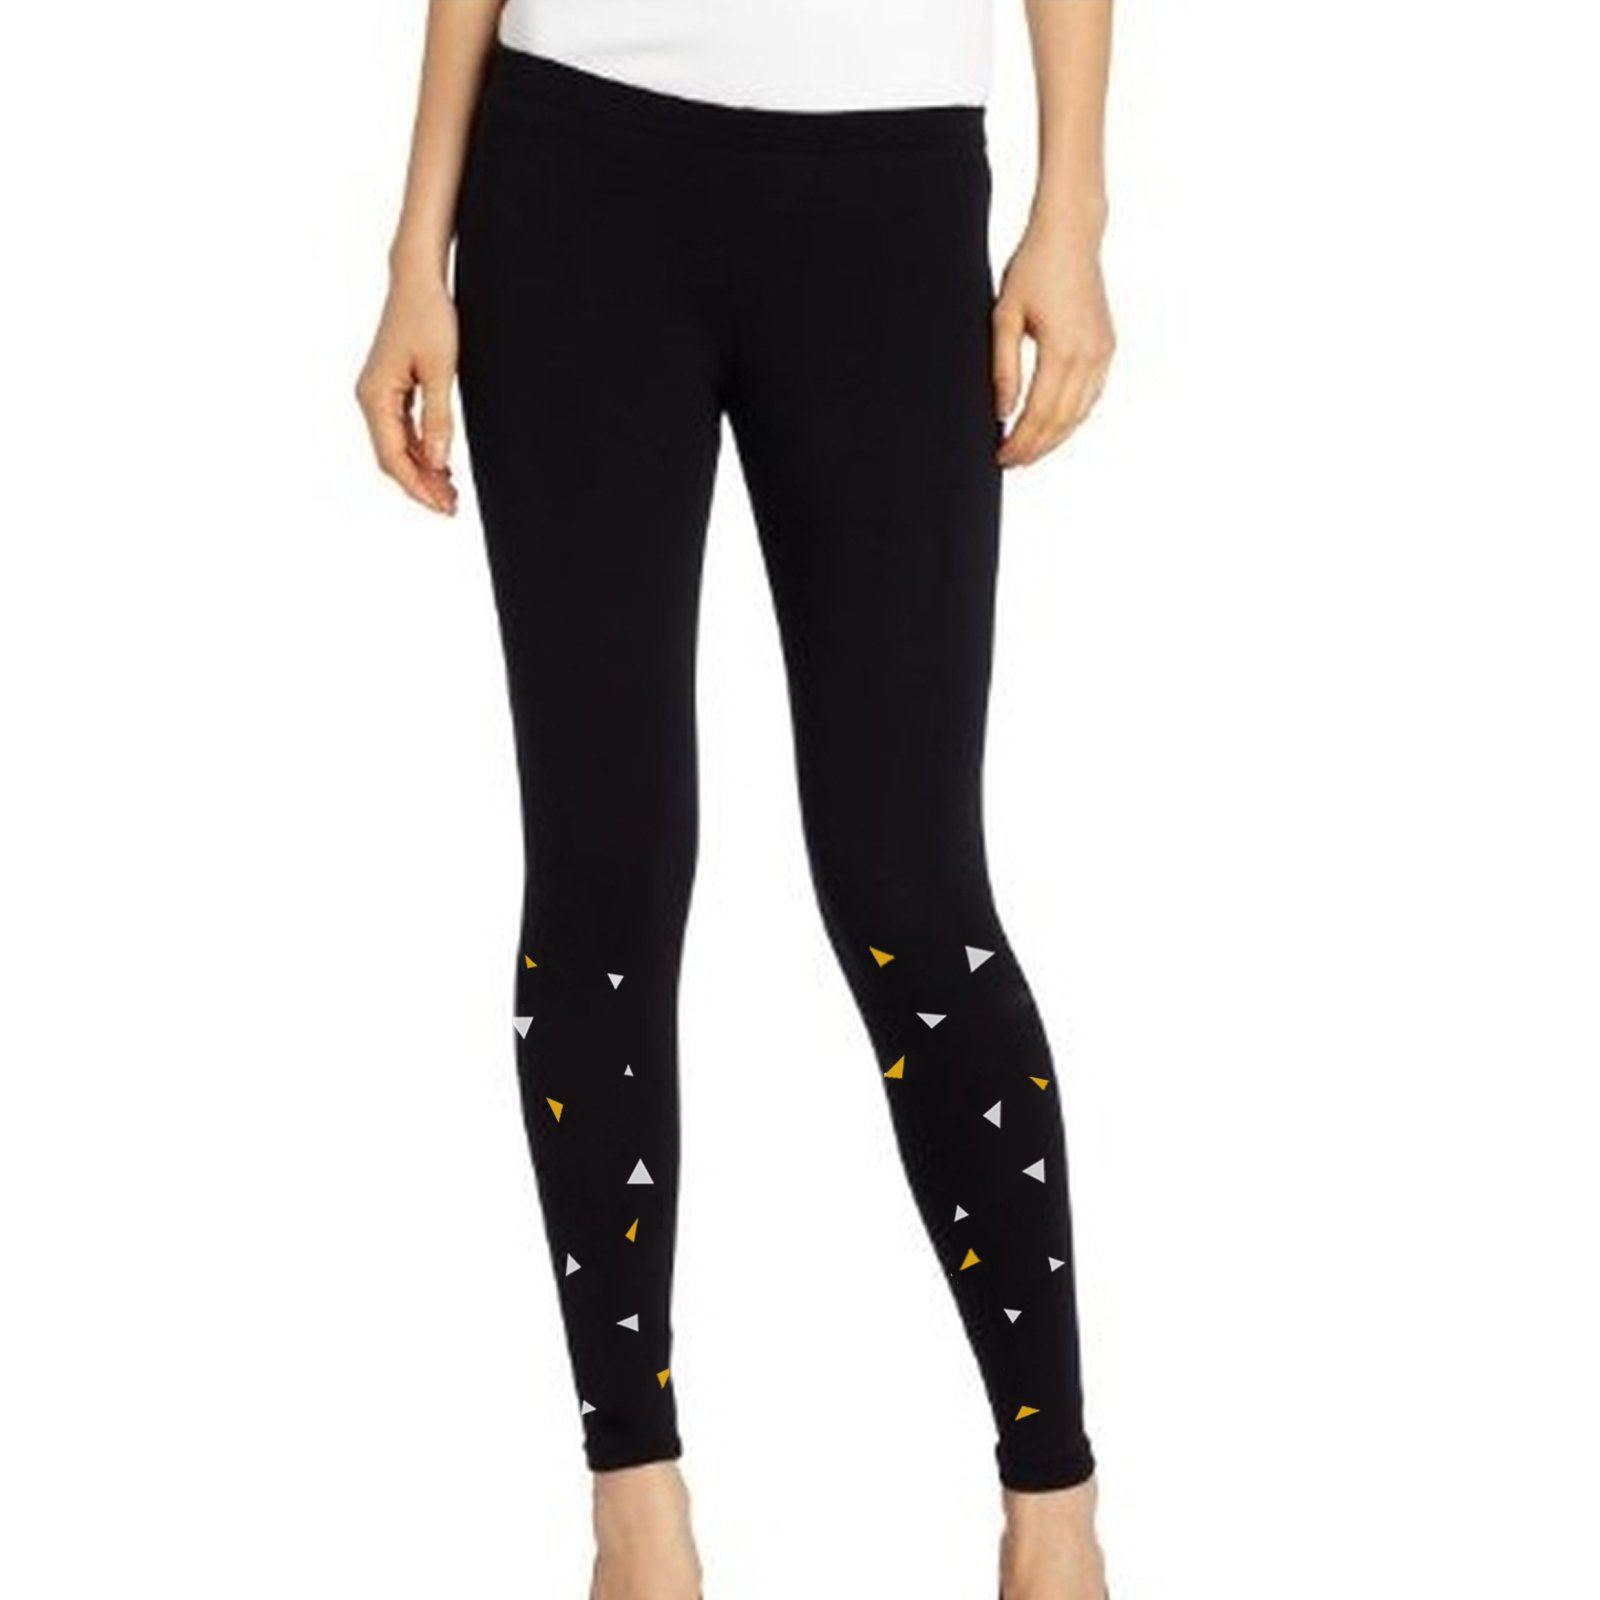 Leggings - Black Leggings With Triangles